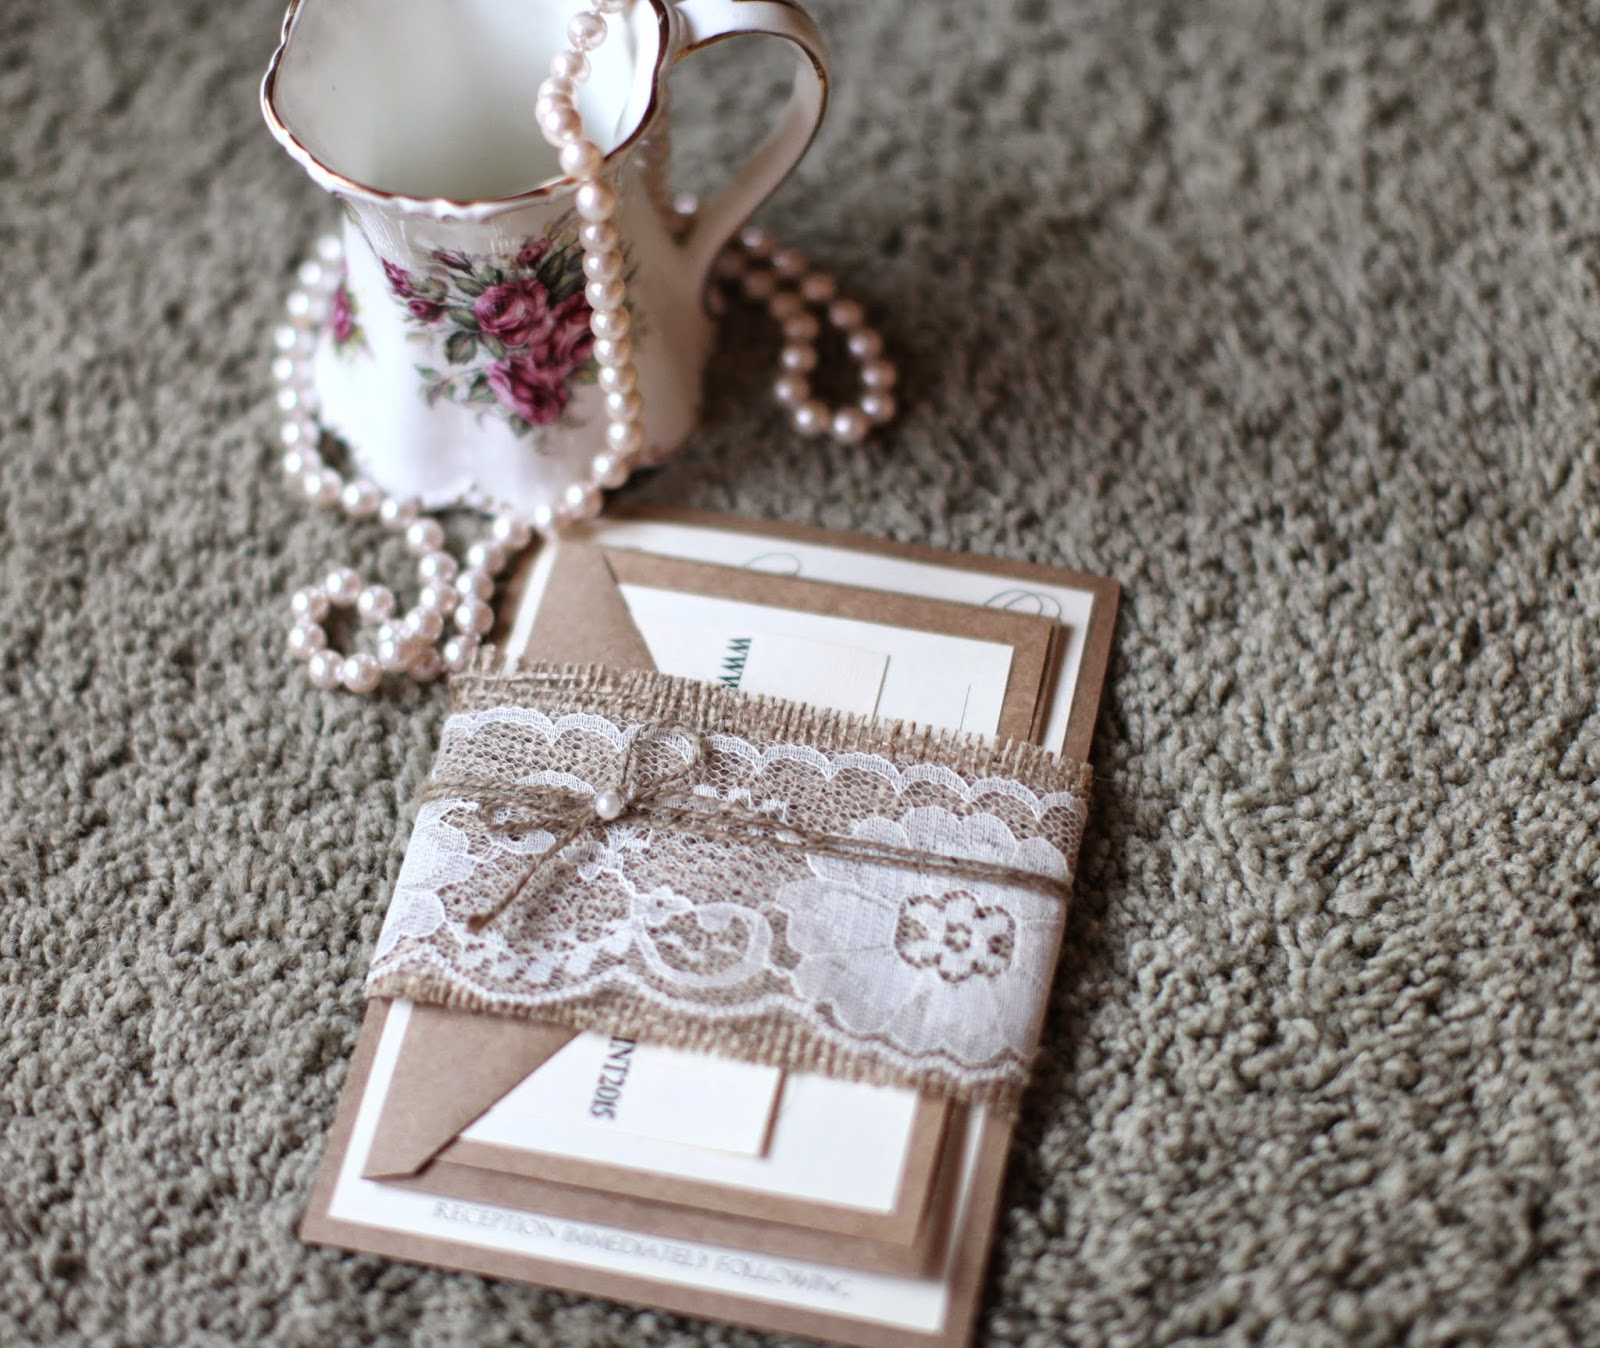 His hers and ours diy rustic chic wedding invitations his hers and ours diy solutioingenieria Gallery